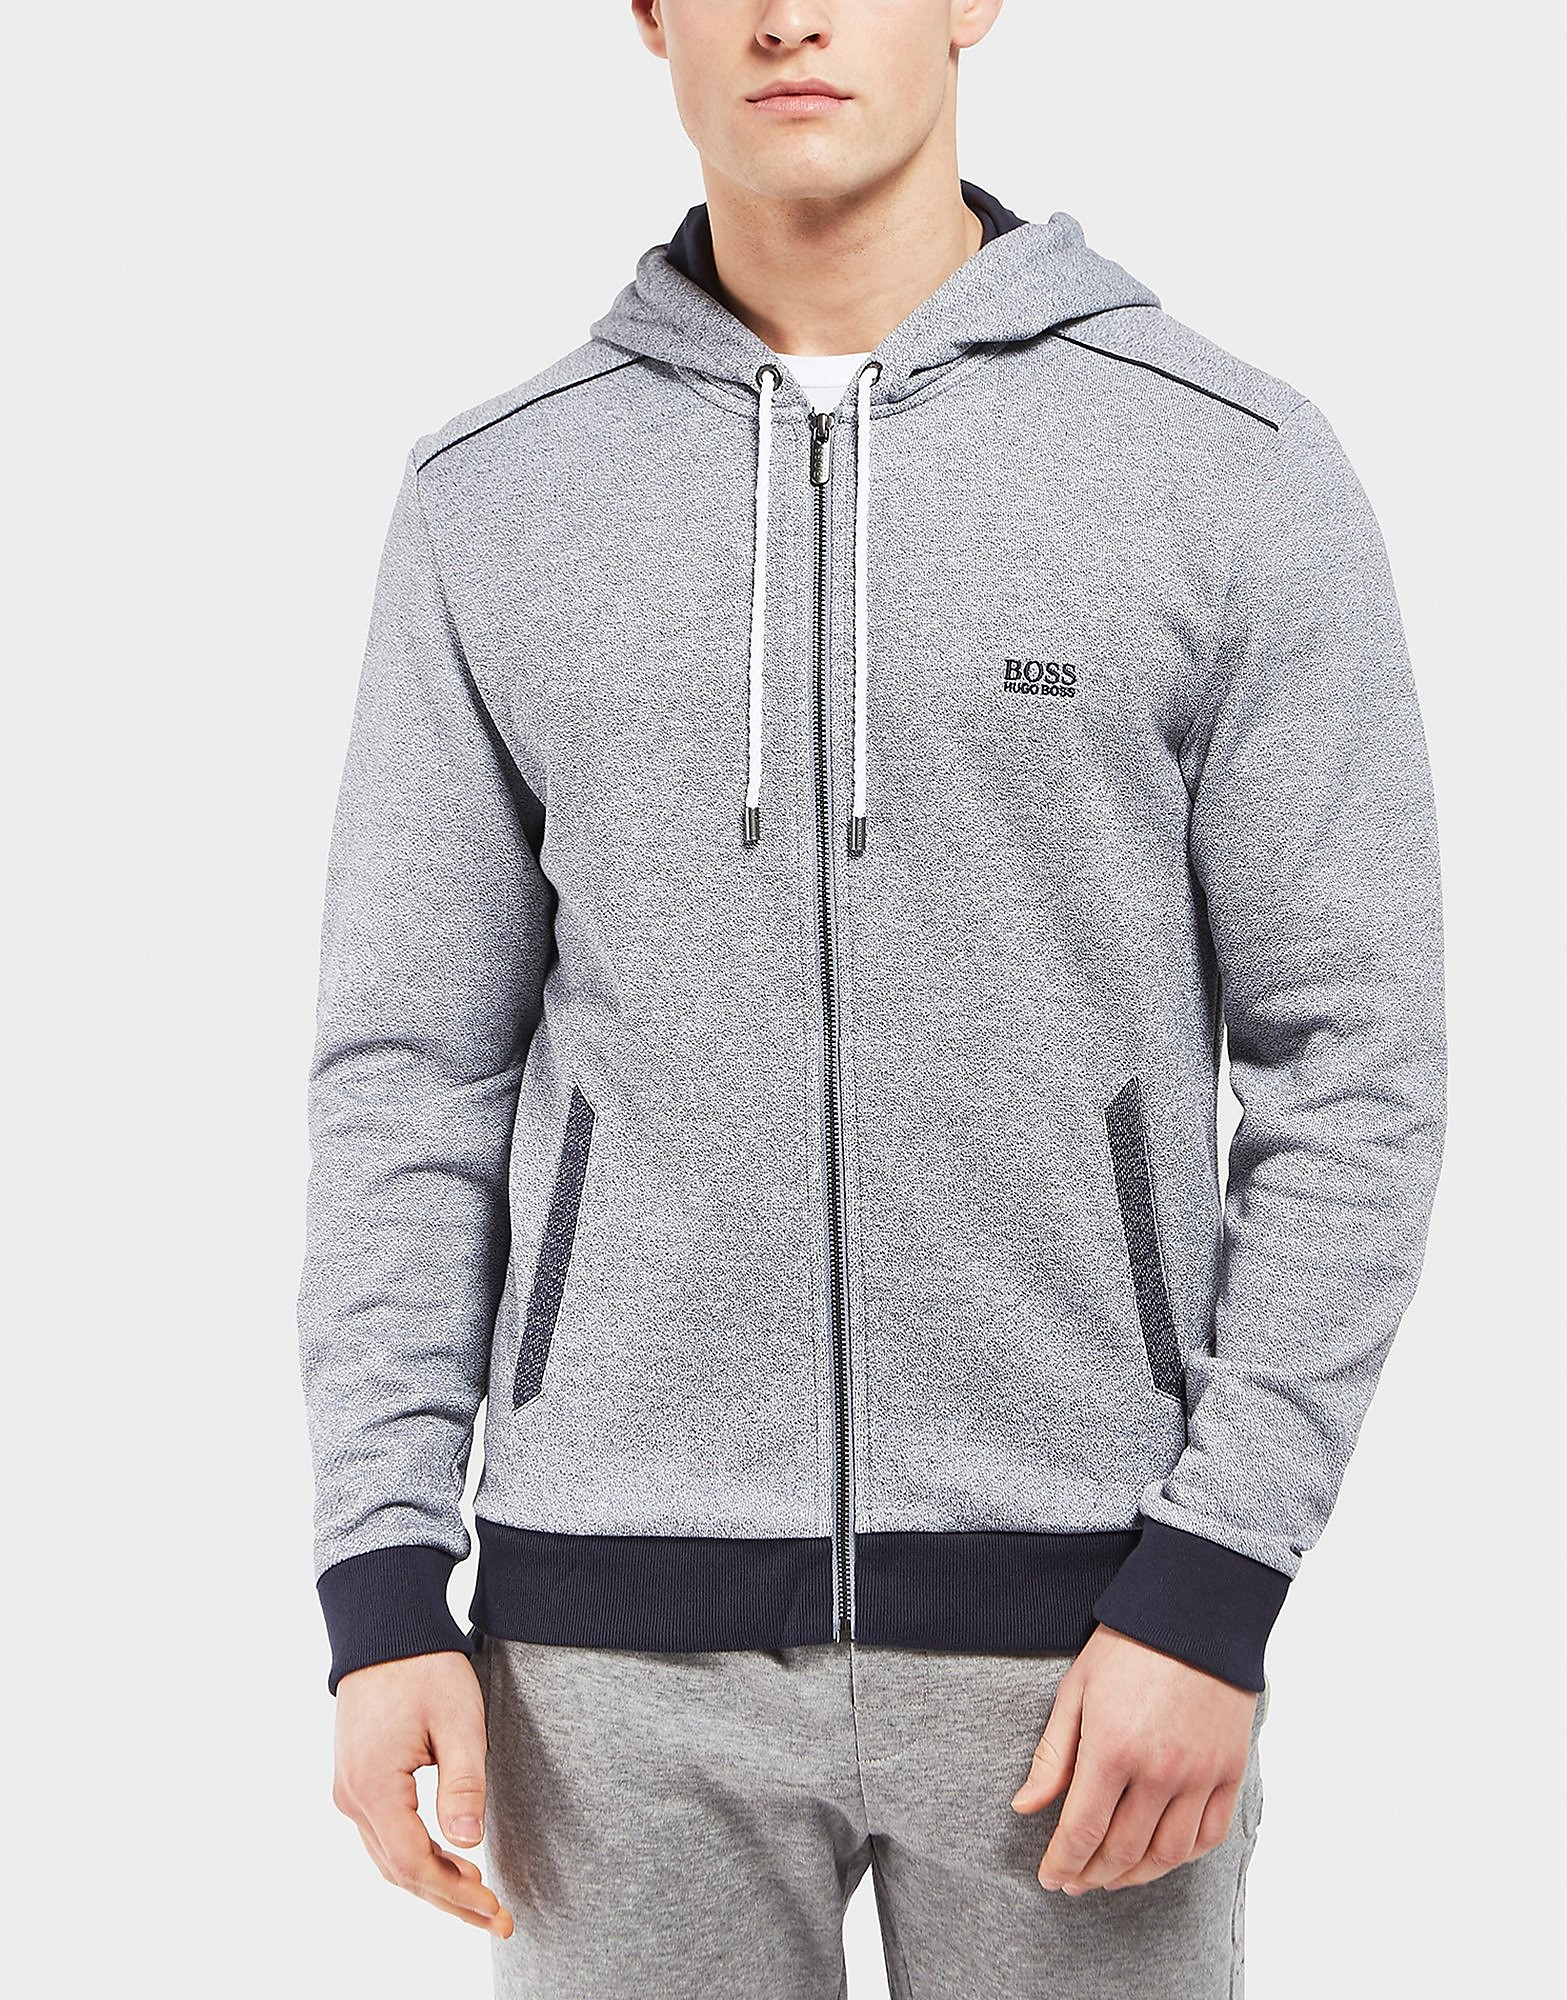 BOSS Marl Full Zip Hoodie - Exclusive